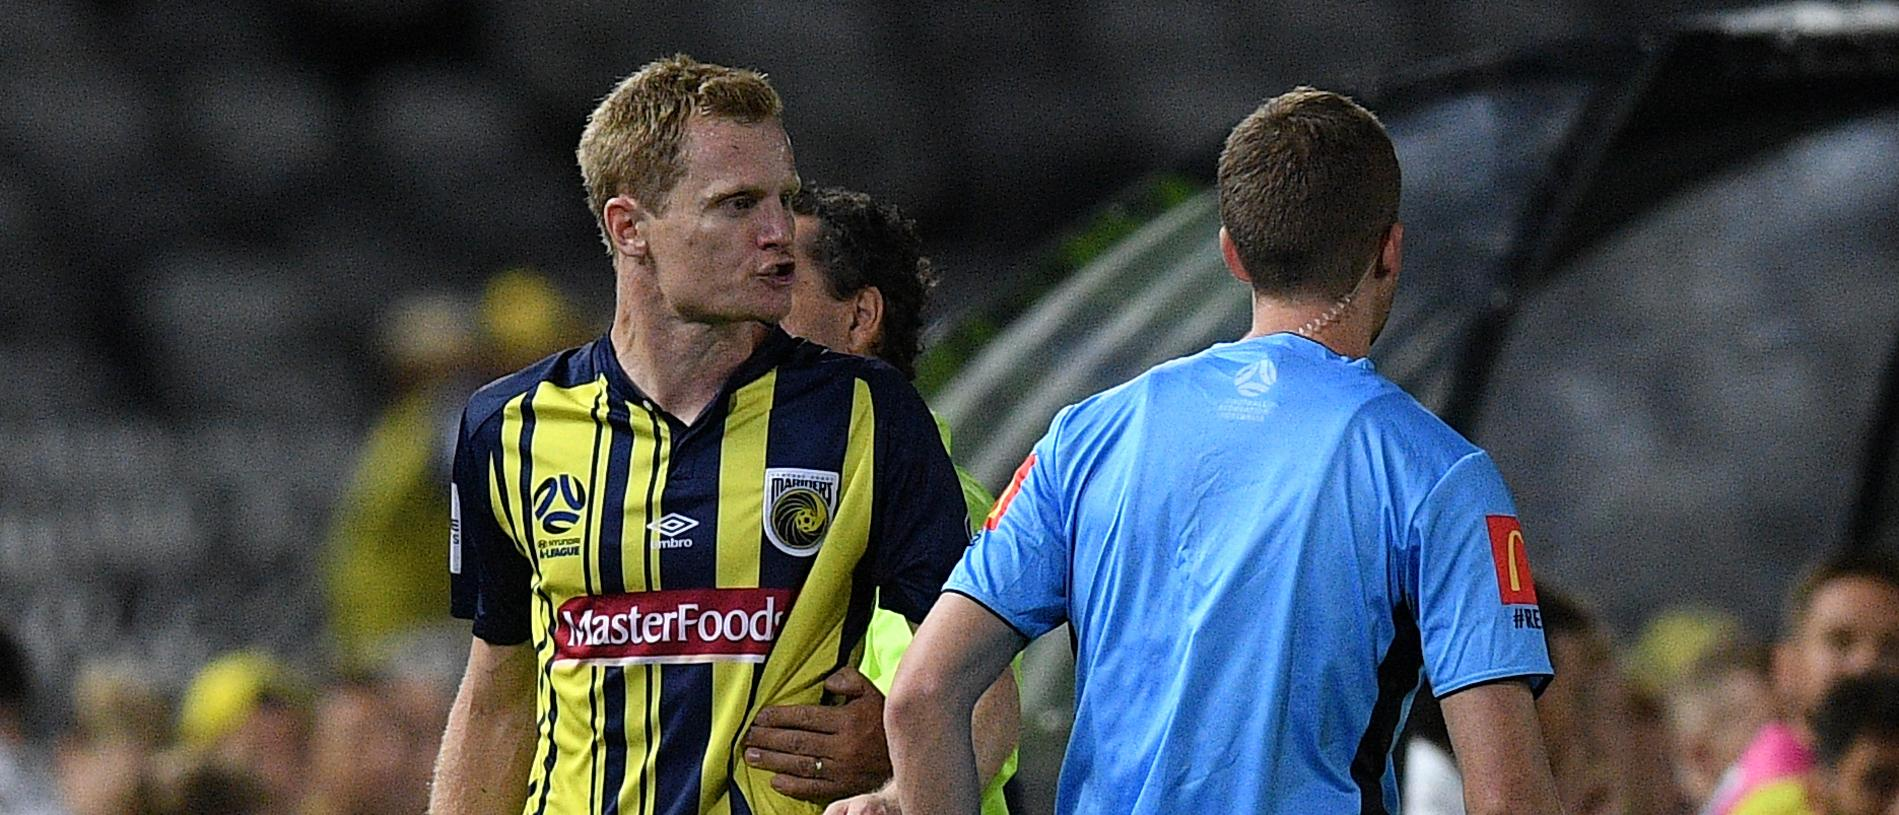 Matt Simon of the Mariners remonstrates with Fourth Offical  Stephen Laurie after being sent off during the Round 20 A-League match between the Central Coast Mariners and Brisbane Roar at Central Coast Stadium in Gosford, Friday, February 22, 2019. (AAP Image/Dan Himbrechts) NO ARCHIVING, EDITORIAL USE ONLY